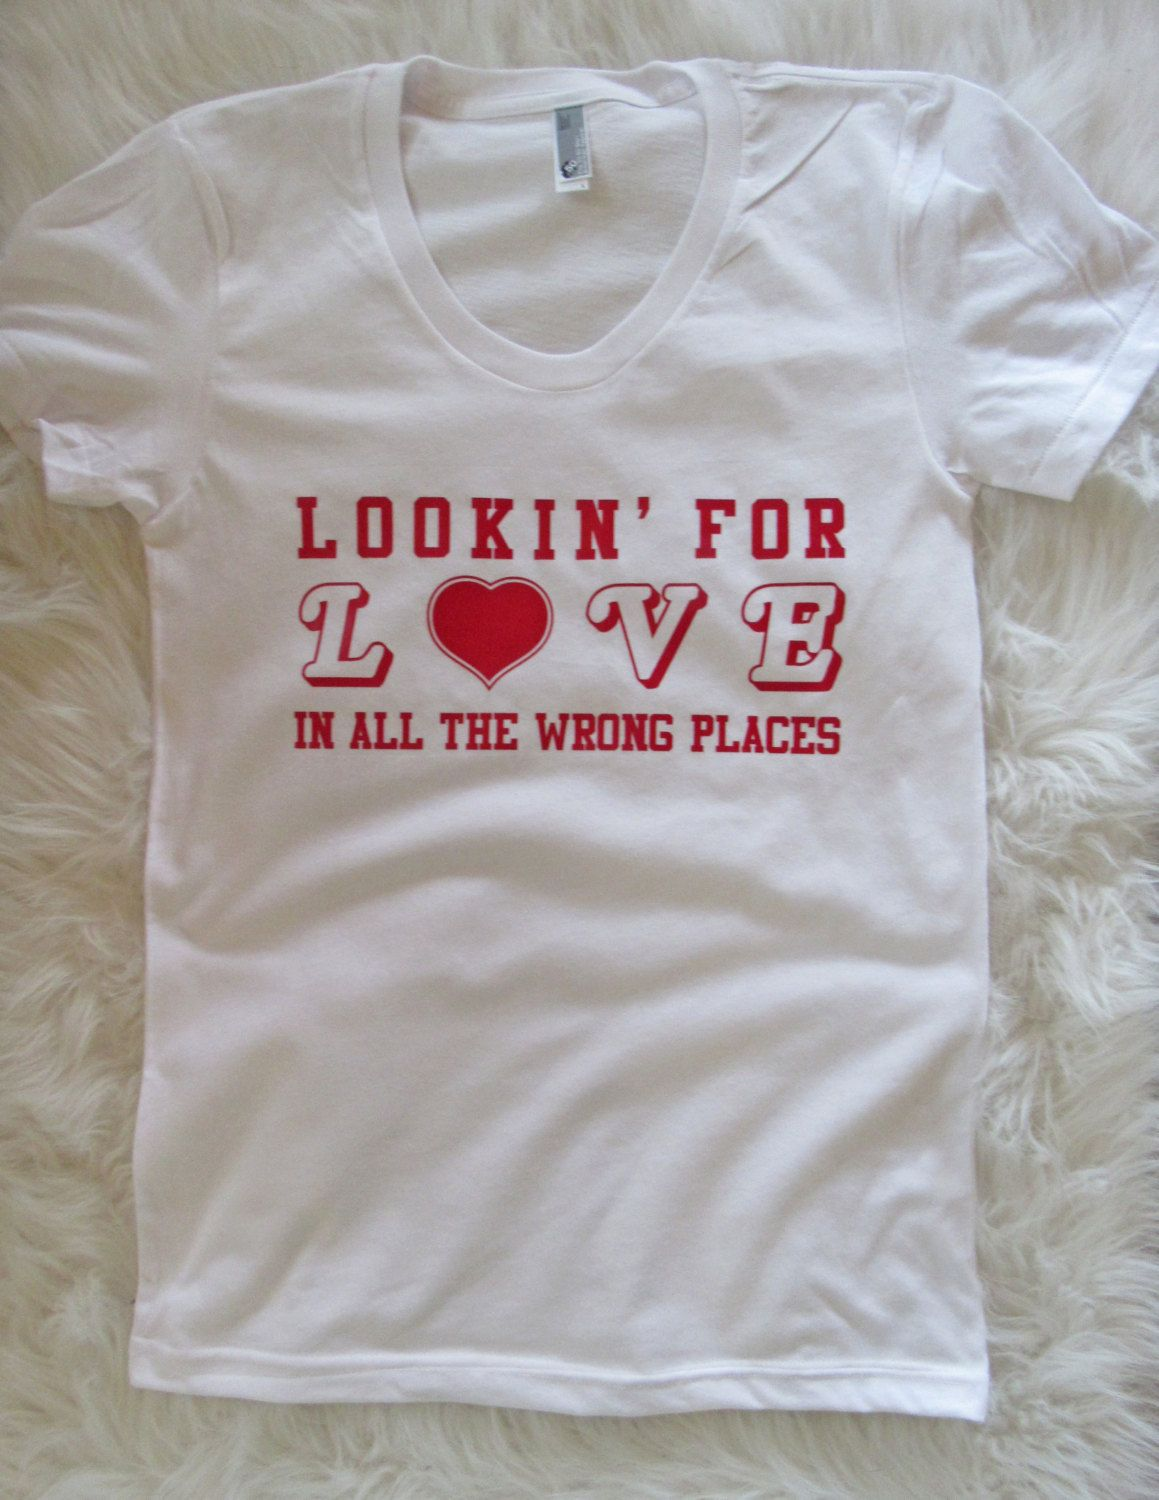 adda7c897 Lookin' for love in all the wrong places/ Valentine T-Shirt/ Country  concert tee by dirtroadavenue on Etsy